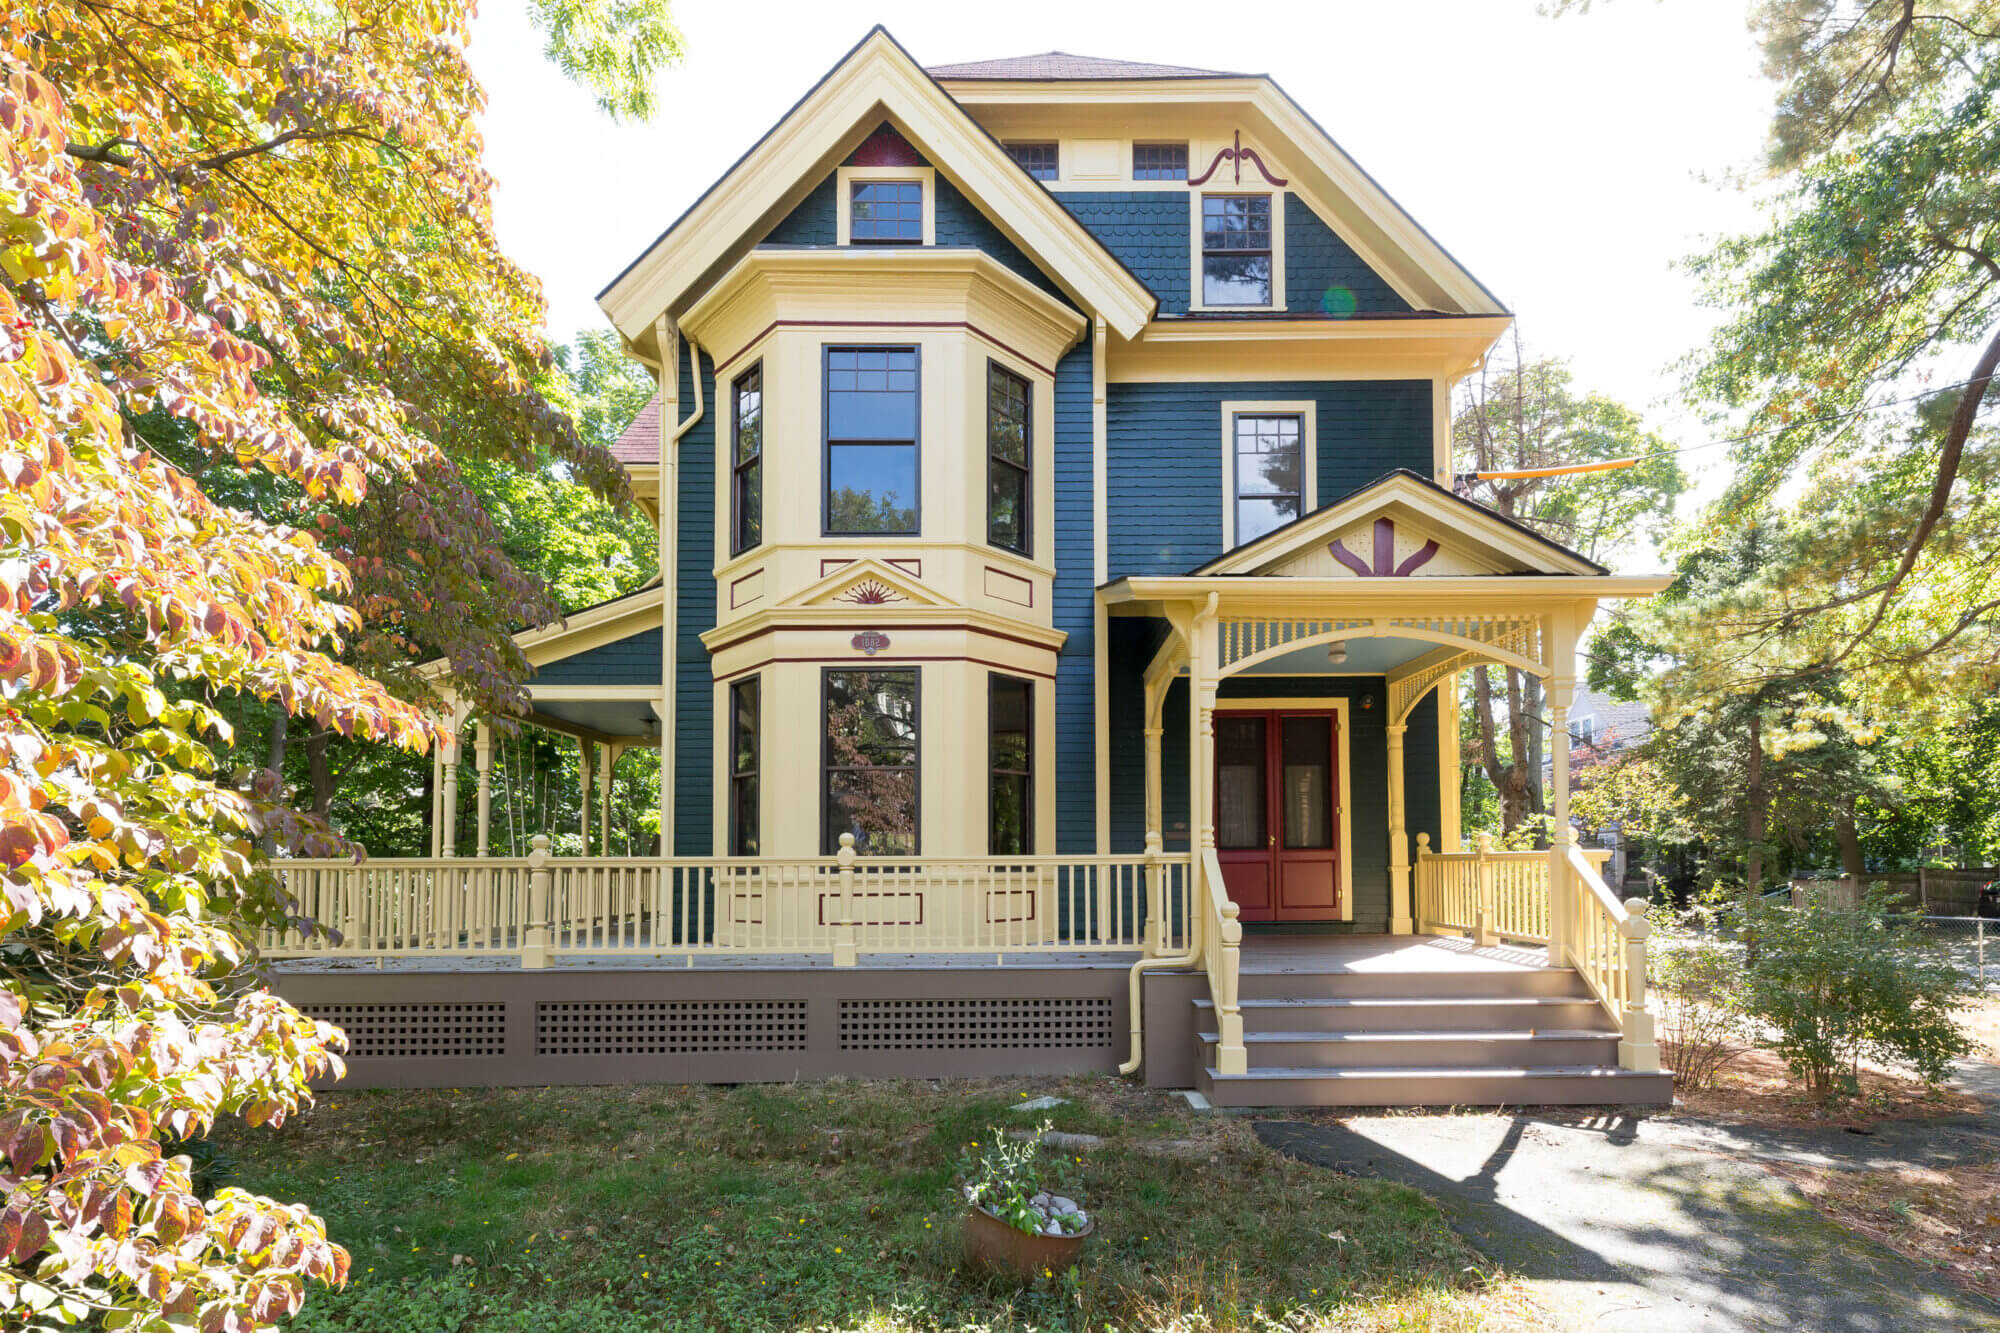 Full image with an exterior front view of the historic Victorian home